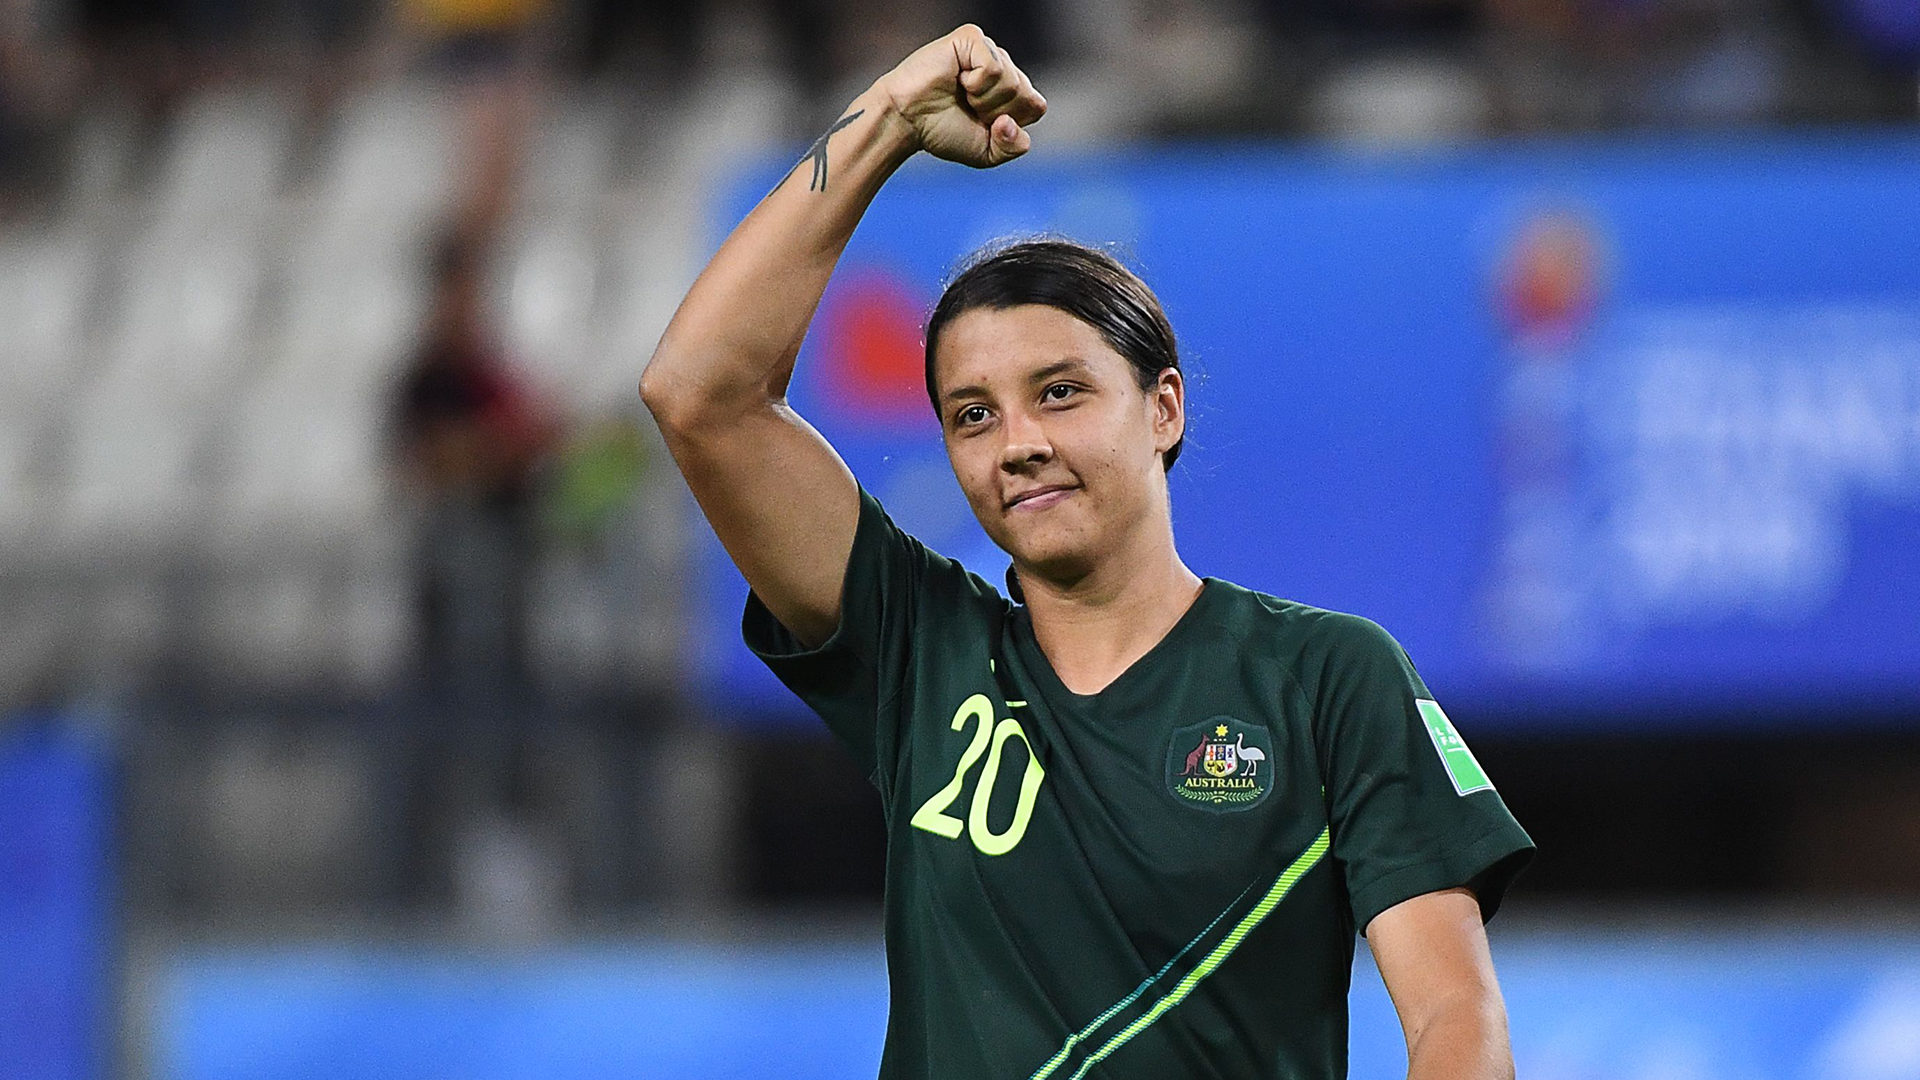 Equal pay for women: Australia's national teams strike historic agreement